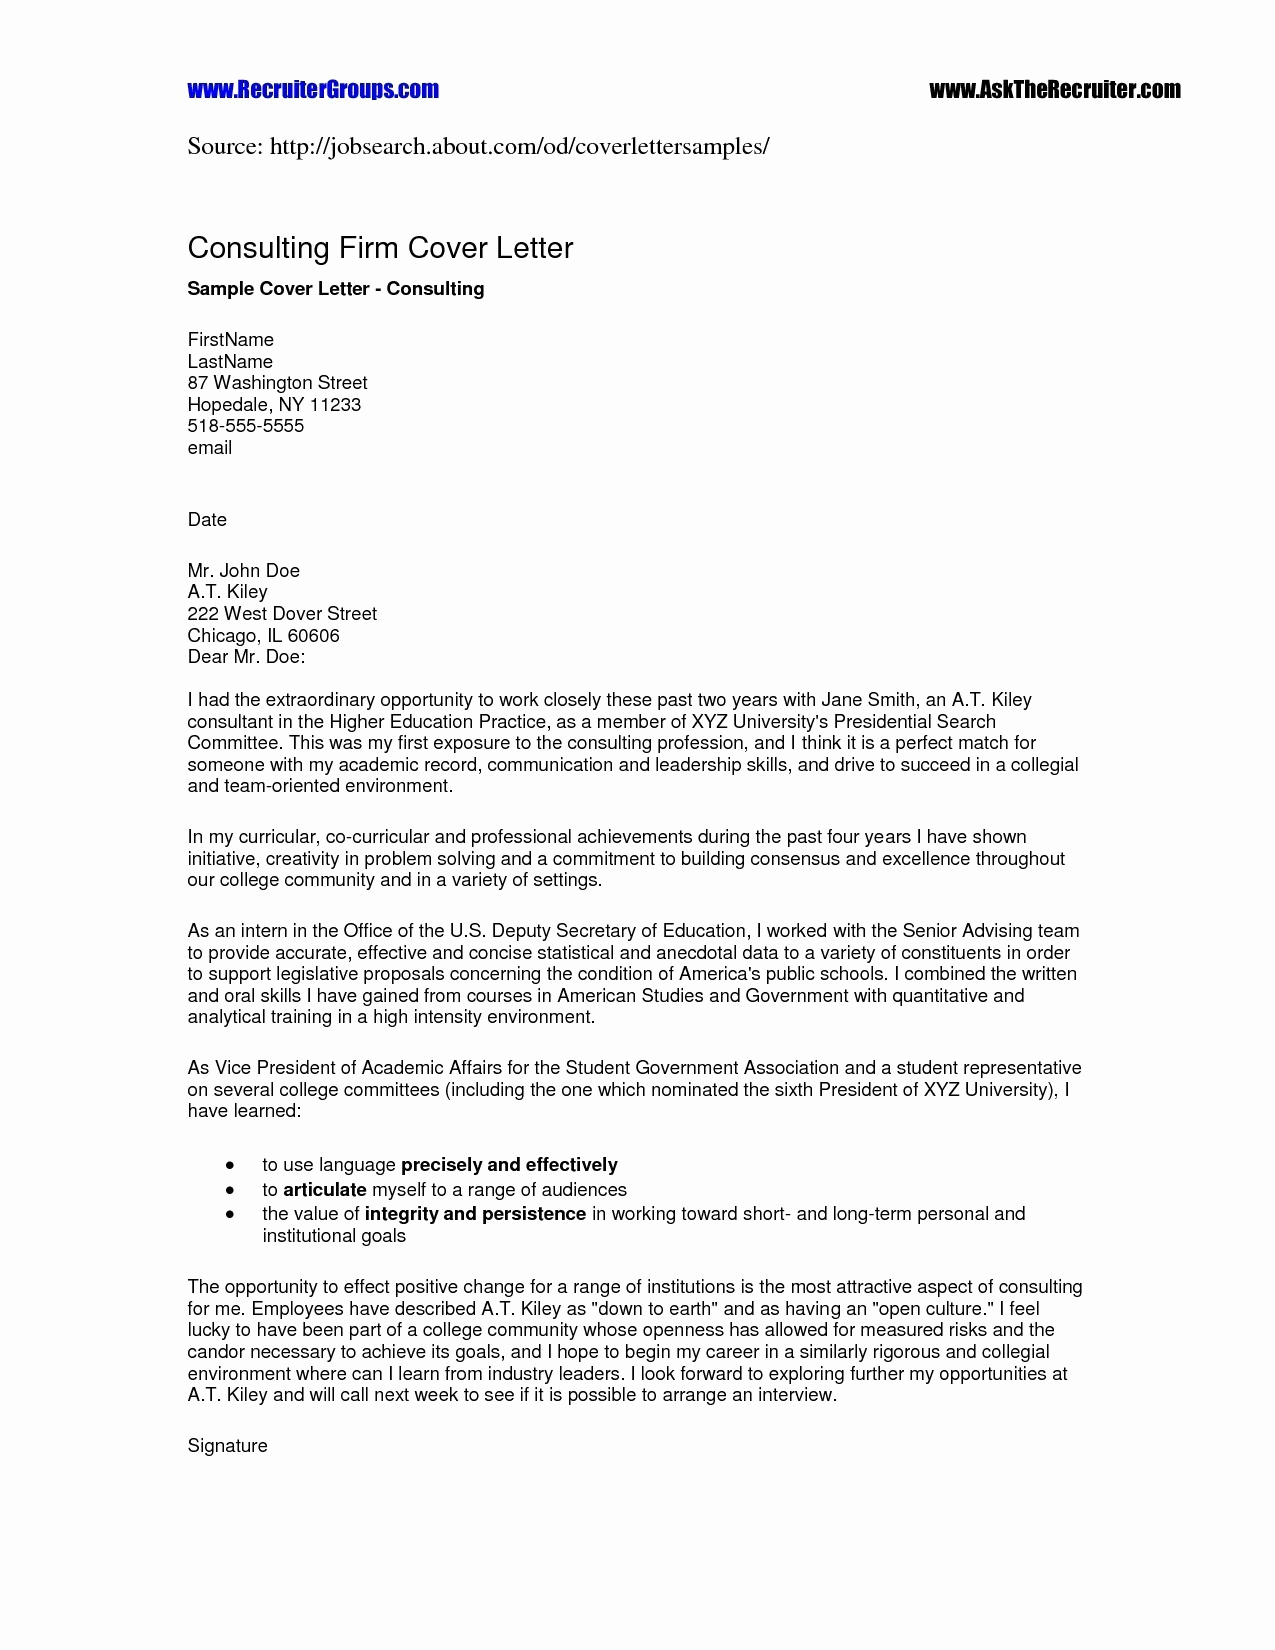 Cover Letter Template Australia - Resume and Cover Letter Templates Australia